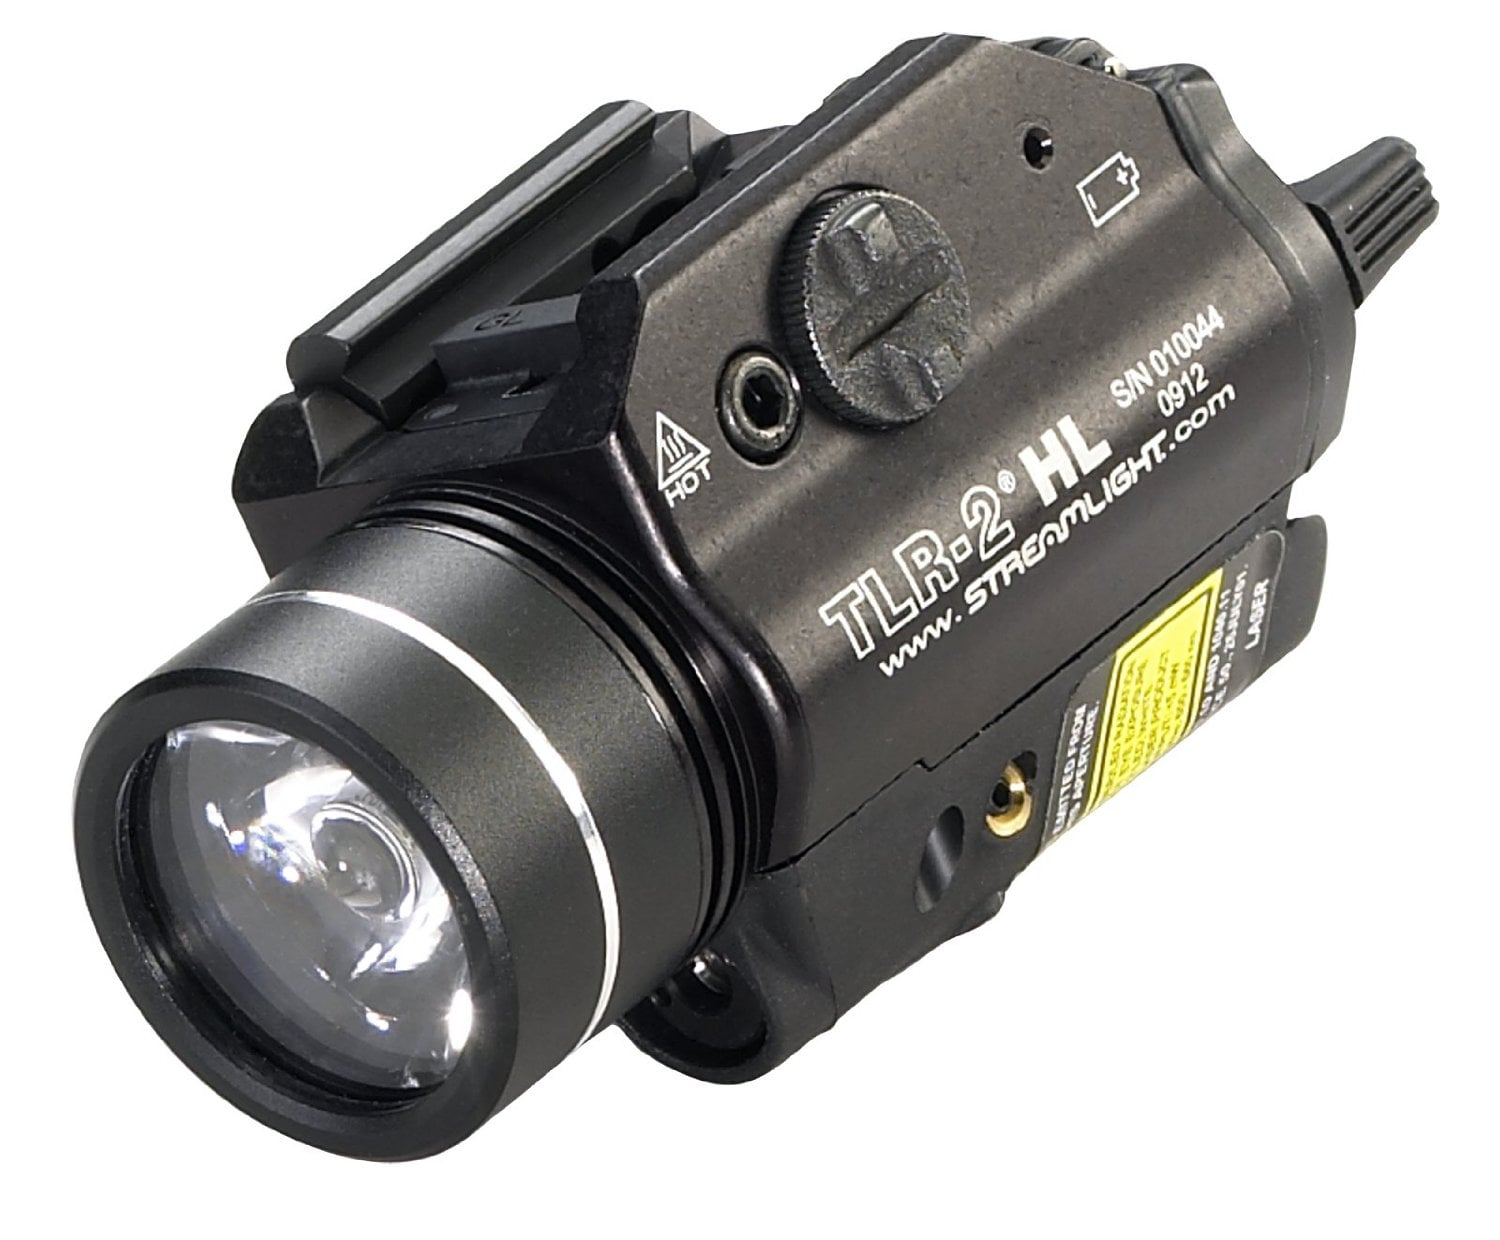 Best Pistol Lights Of 2018 - Top 14 Weapon Lights Compared  061ac1fb16ed